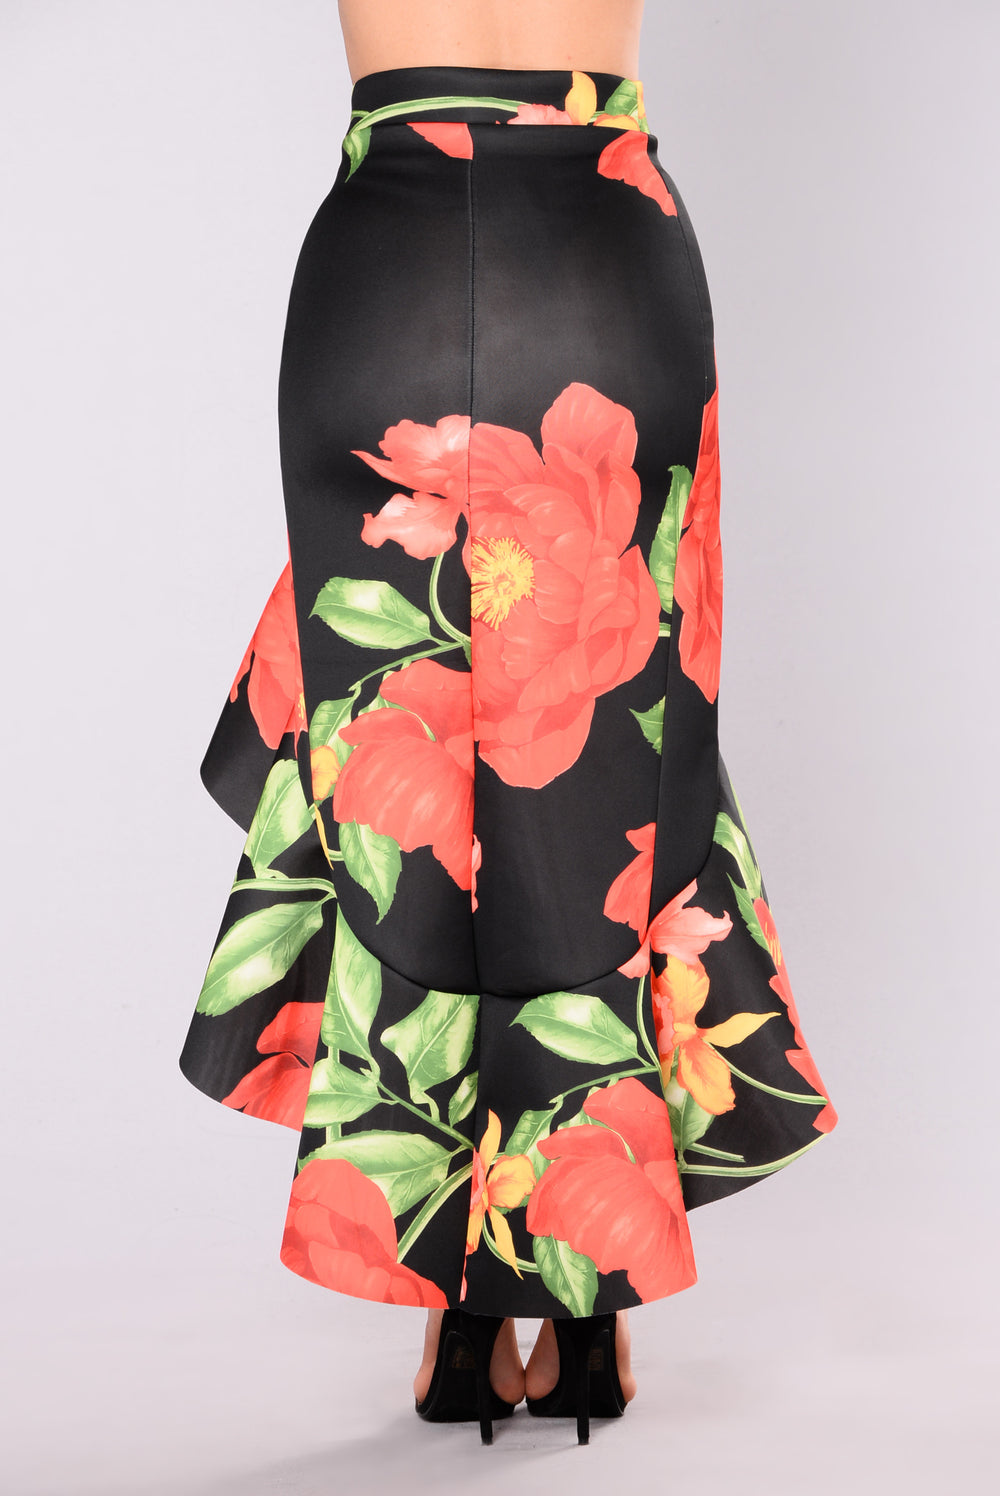 Rose Bouquet Ruffle Skirt - Black